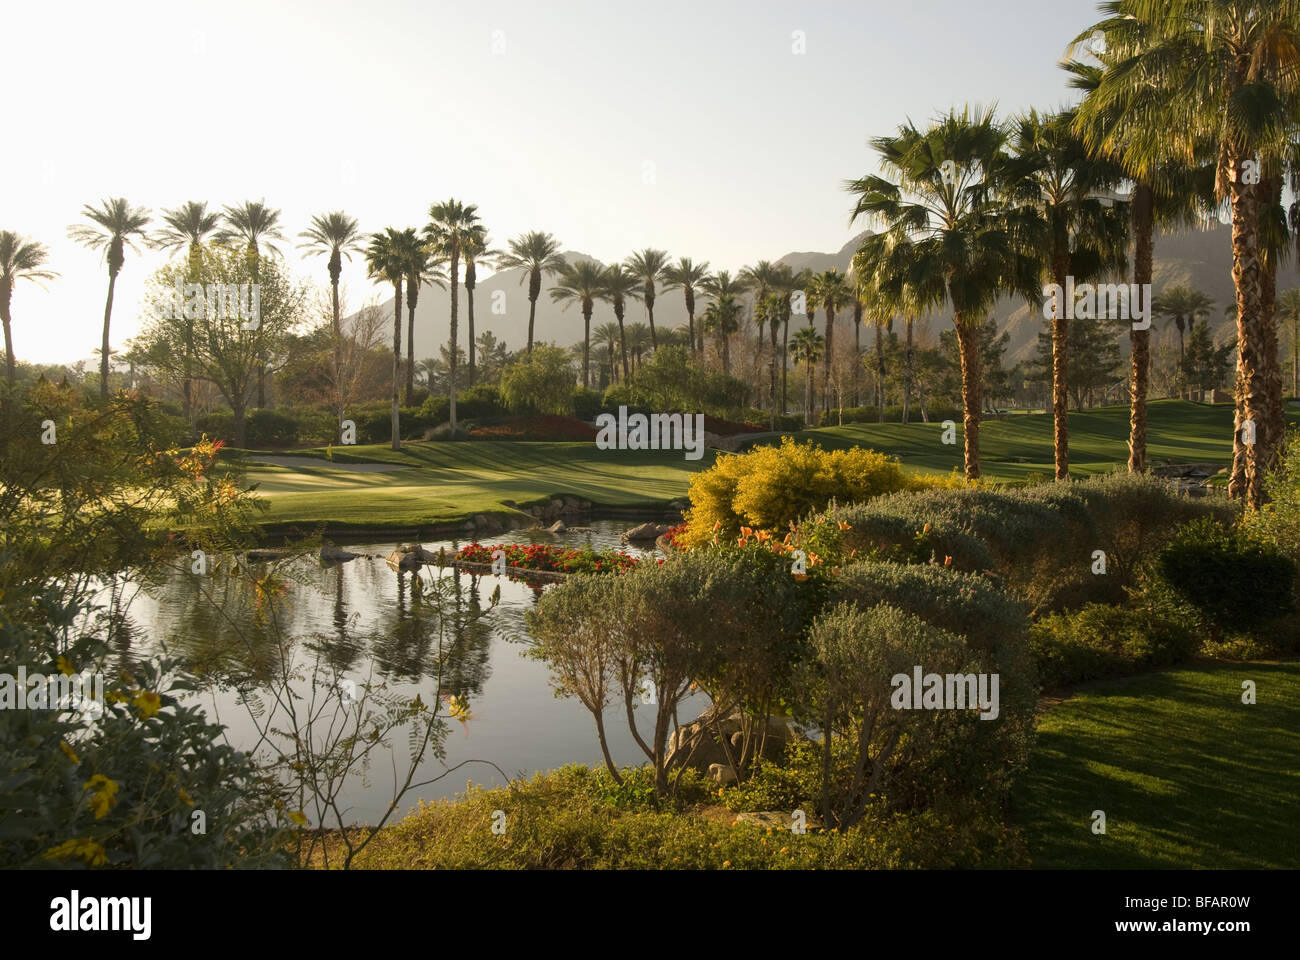 Golf course Indian Wells Palm Springs Coachella valley - Stock Image